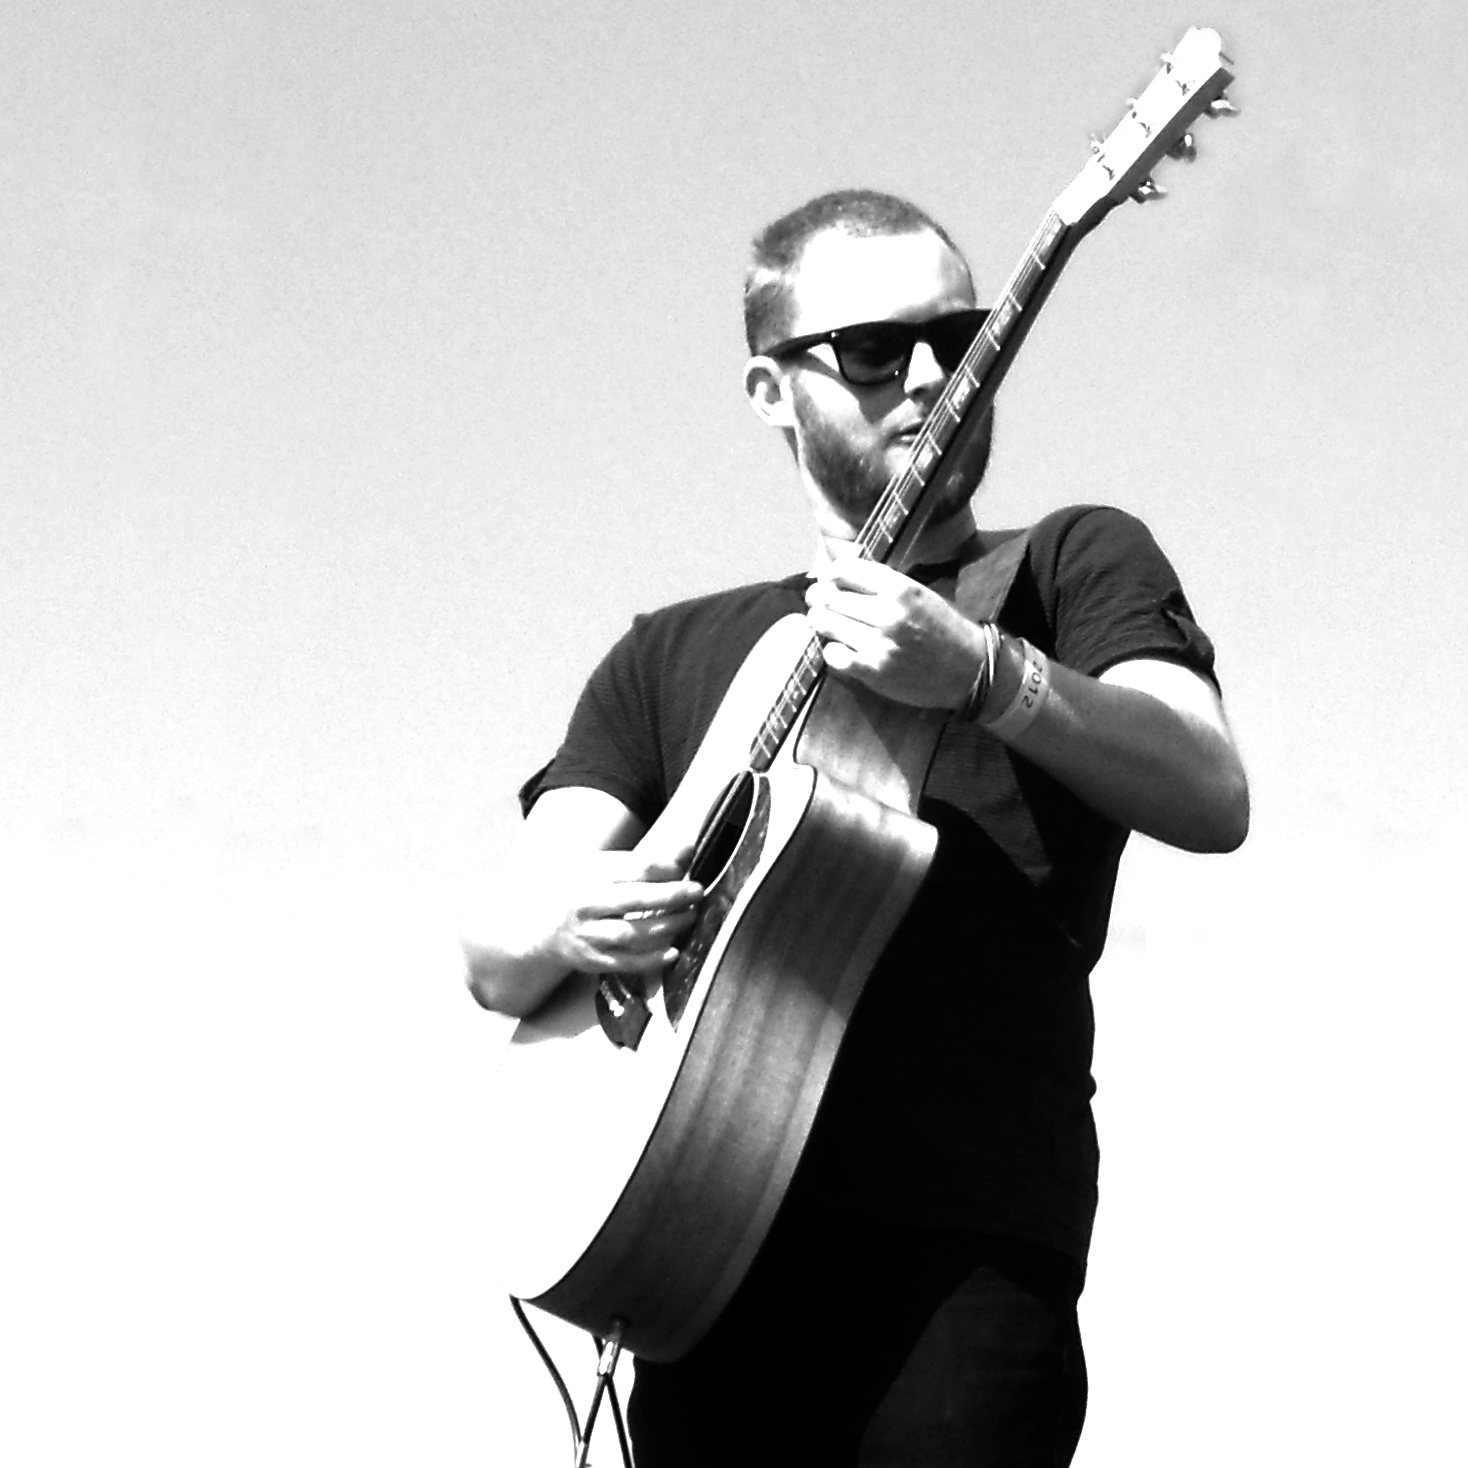 Marcus Wynwood playing his acoustic guitar at the Devonport Food and Wine Festival